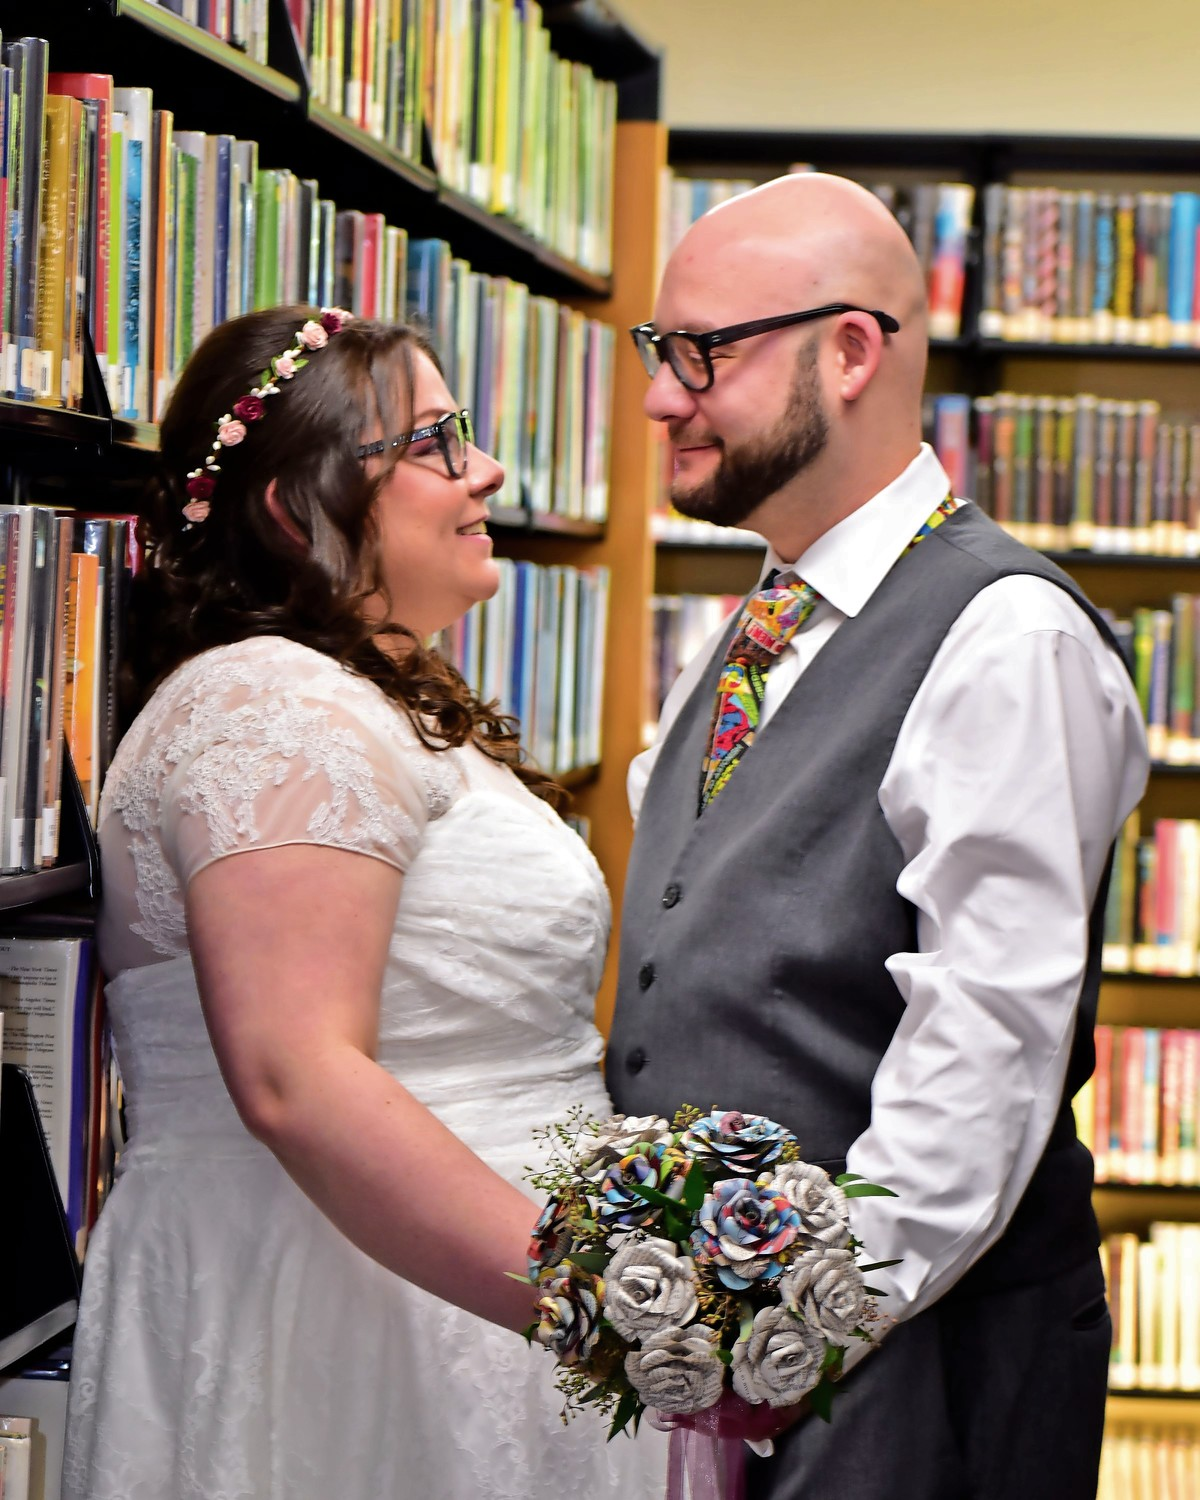 Newlyweds and comic book enthusiasts Tricia Balsan, 30, and Steve Schuster, 33, were married among the bookshelves of the Oceanside Library on Oct. 27.